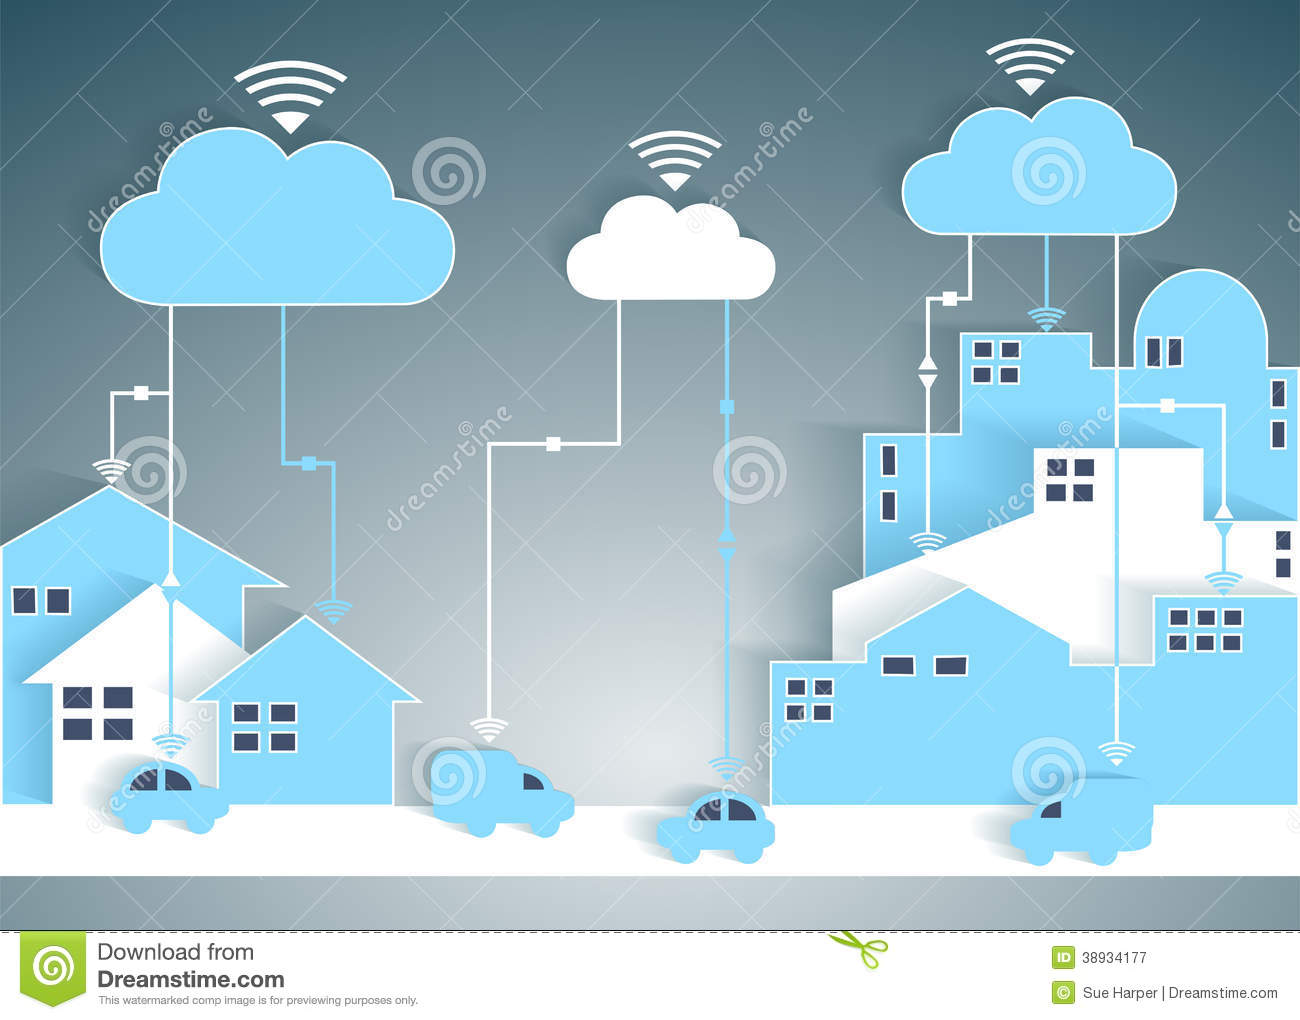 how to get free cloud wifi